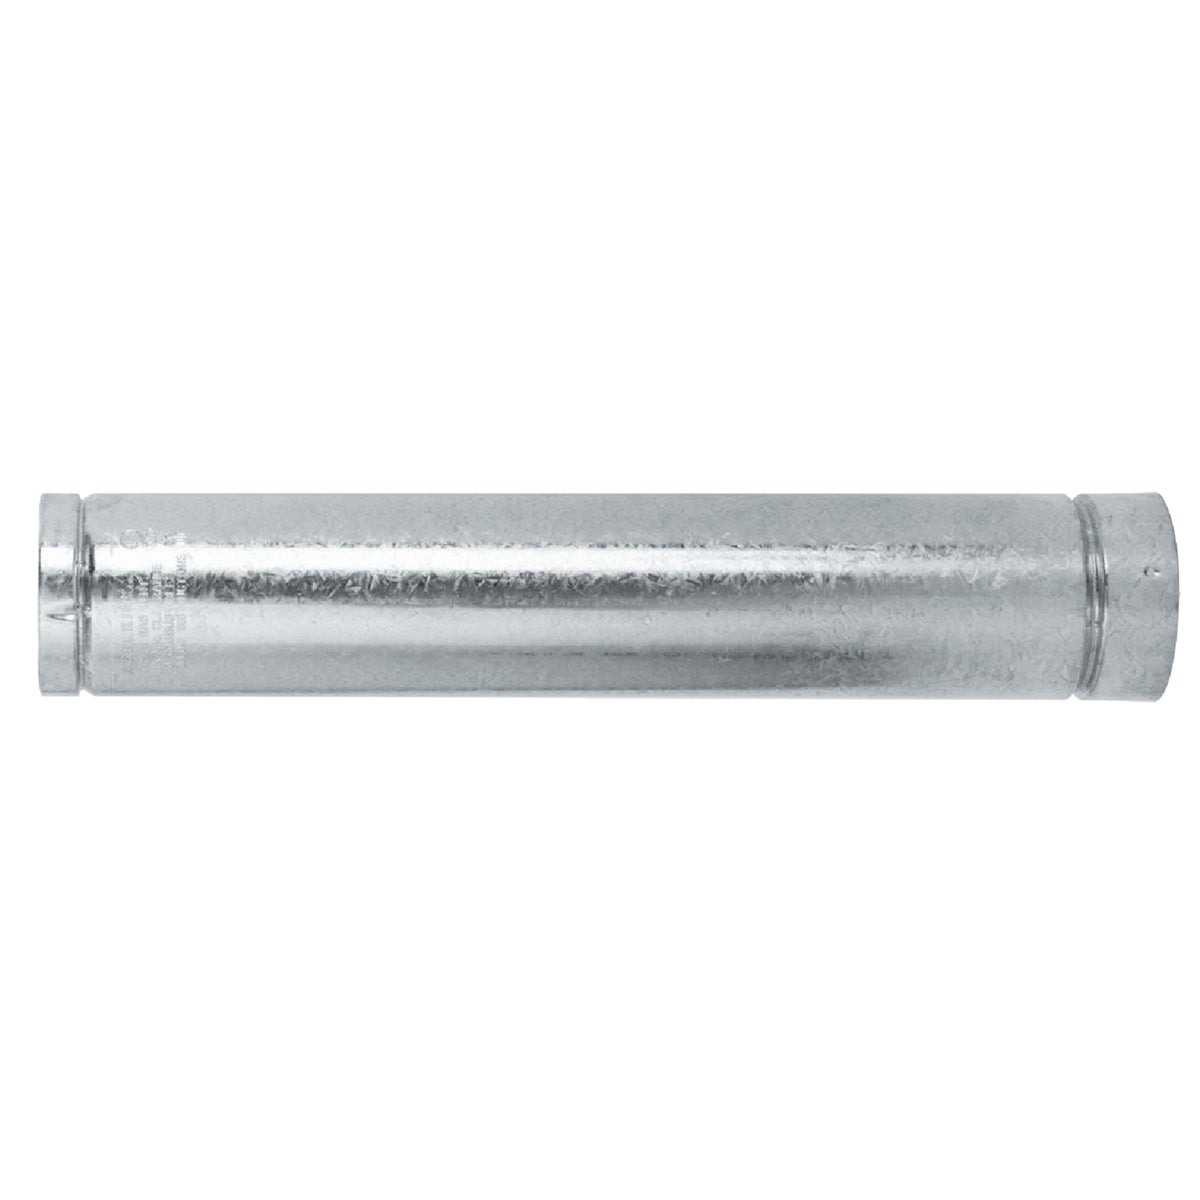 "4""X5' RND GAS VENT PIPE - 4RV-60 by Selkirk Corporation"